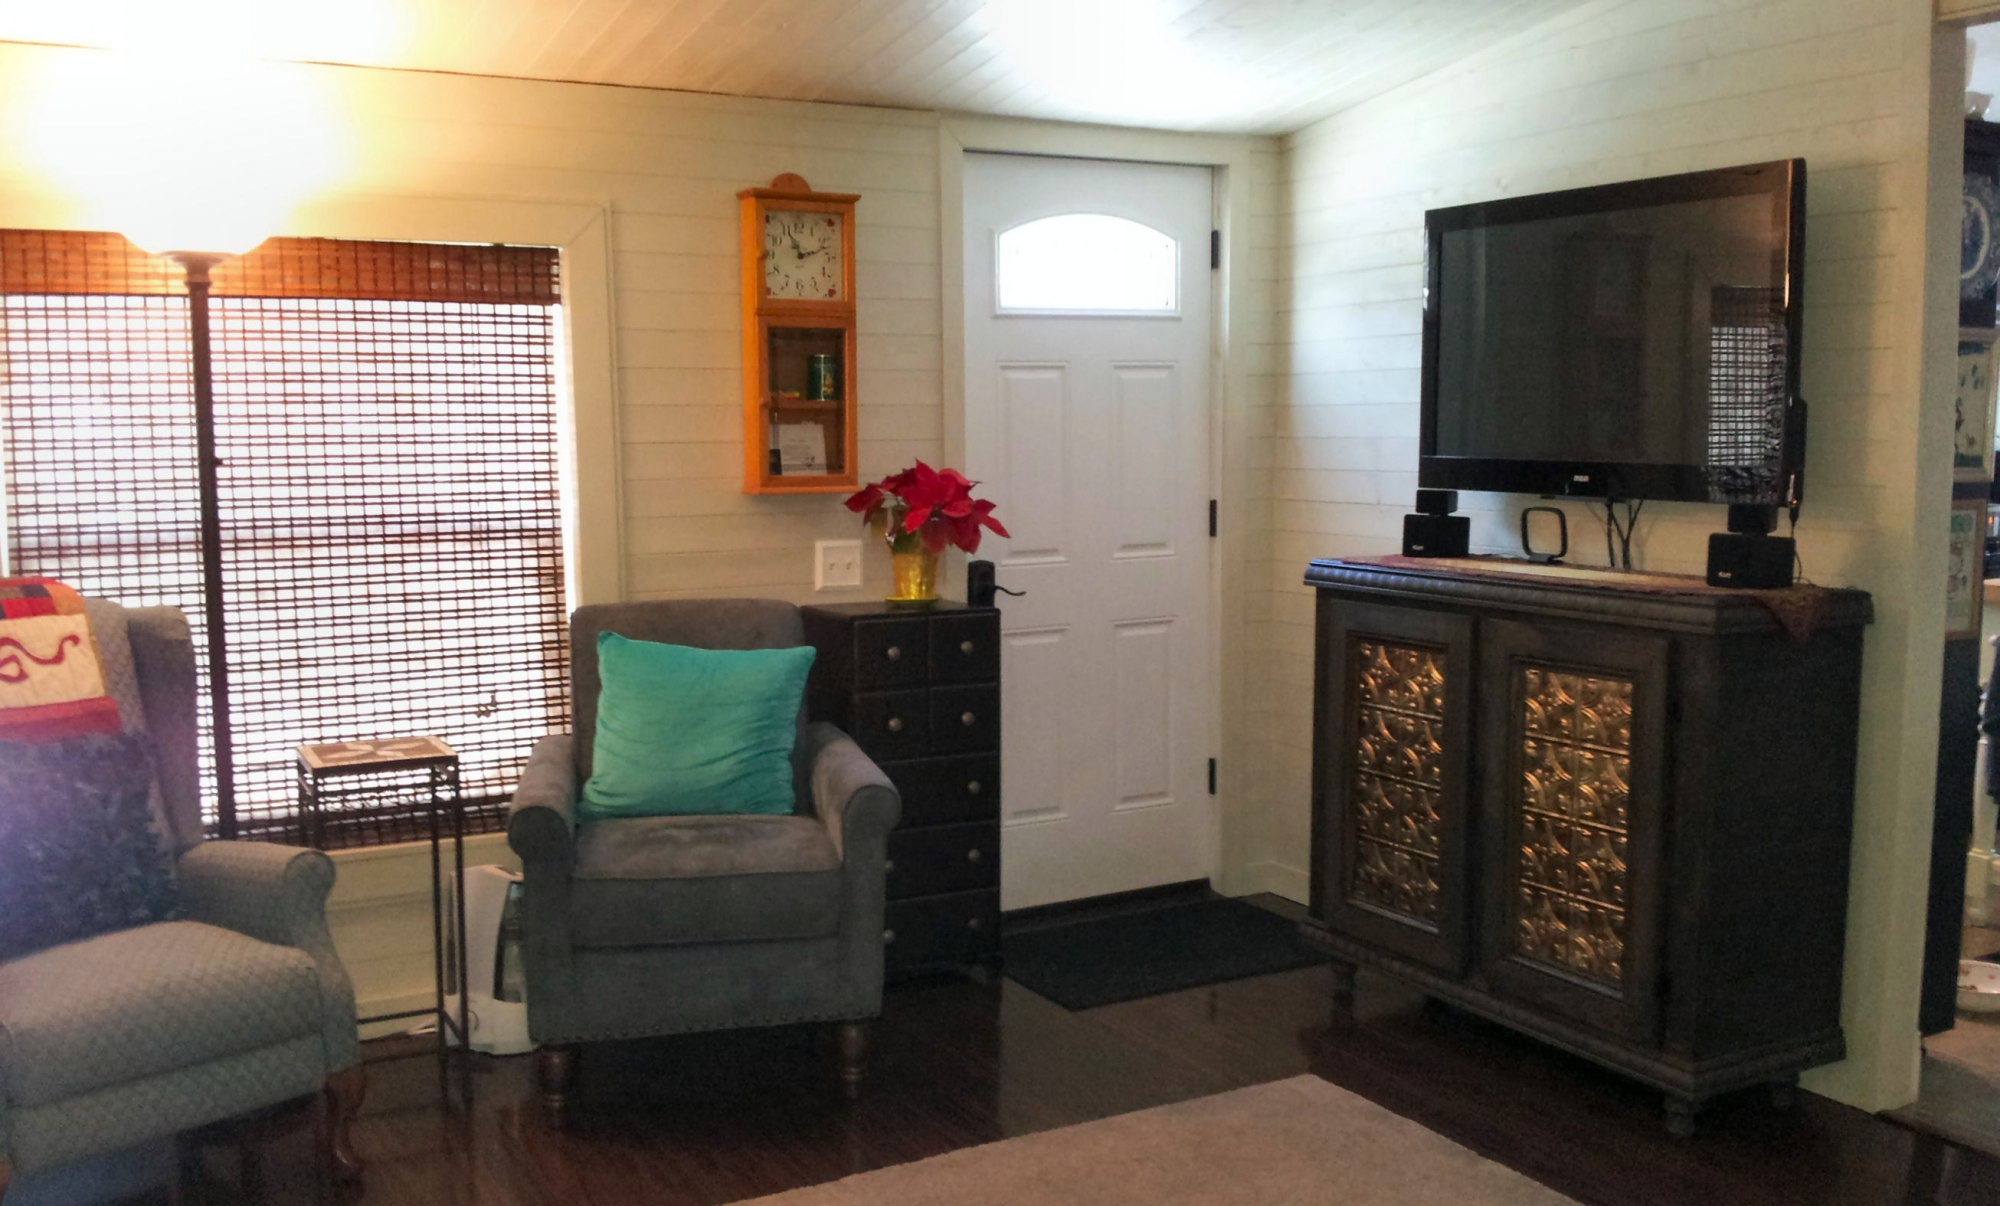 Mobile home living room remodel the finale my mobile - How to decorate a mobile home living room ...